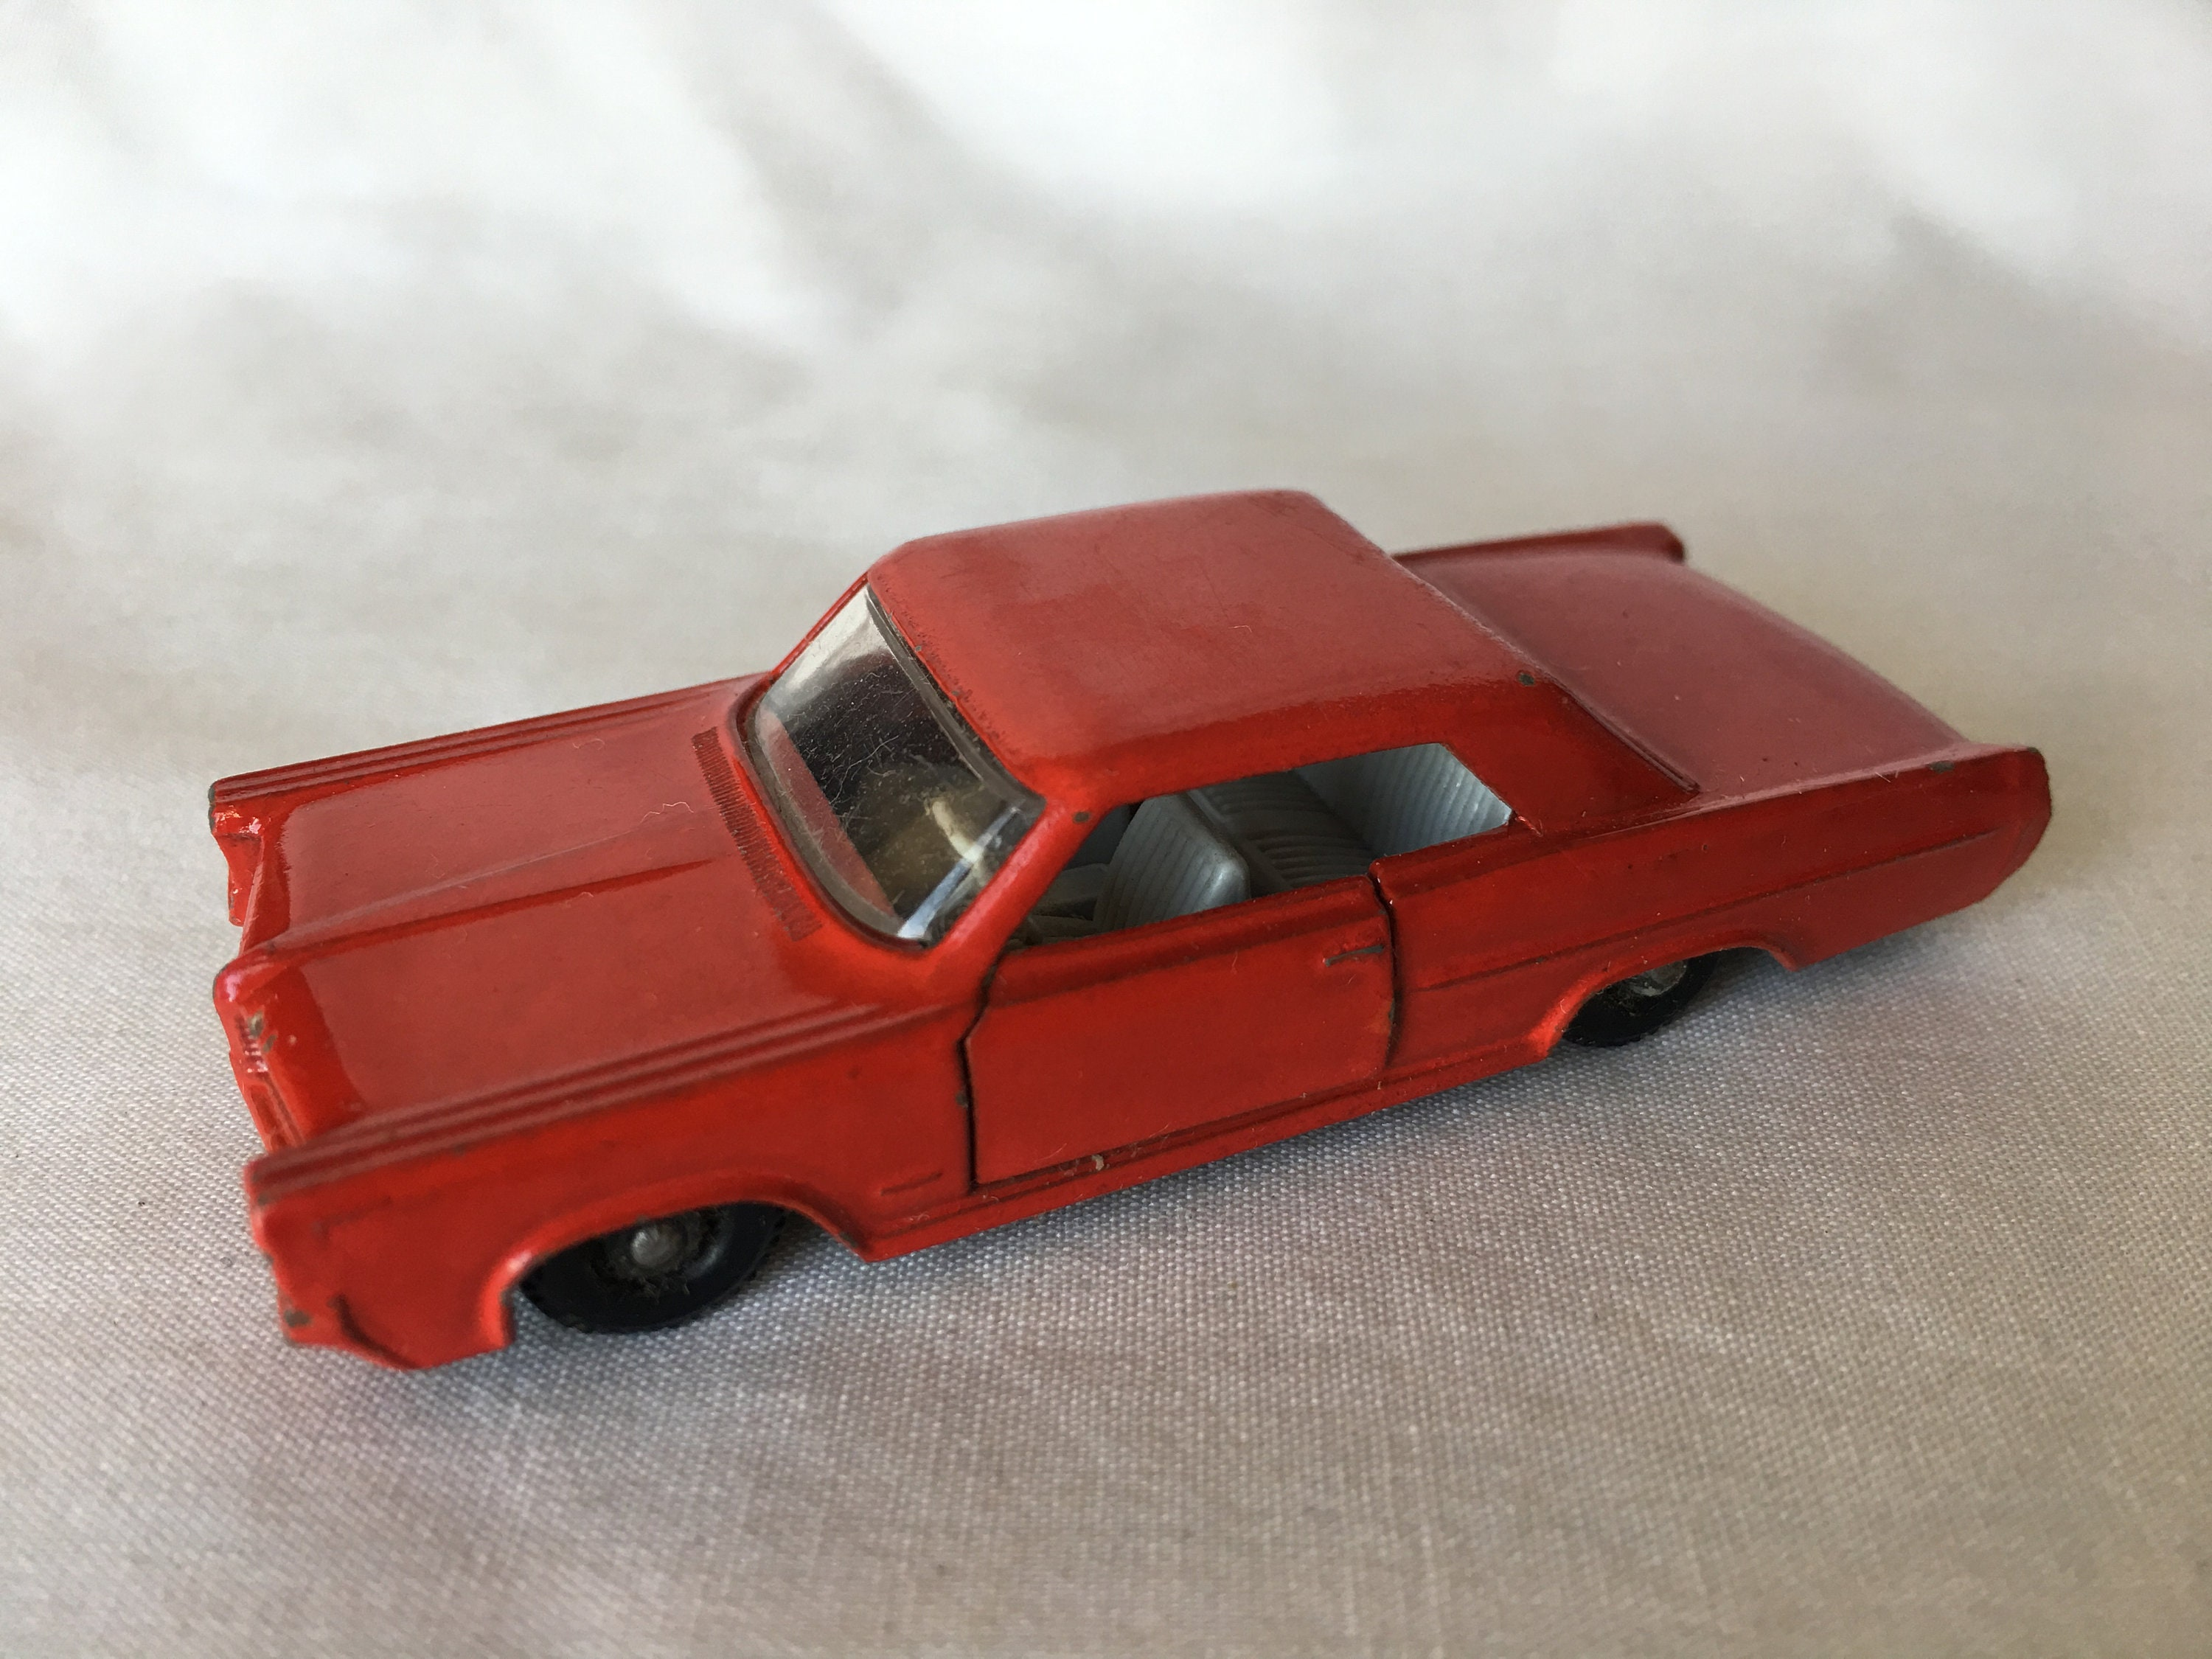 Pontiac GP Sports Coupe, Matchbox, vintage '60s